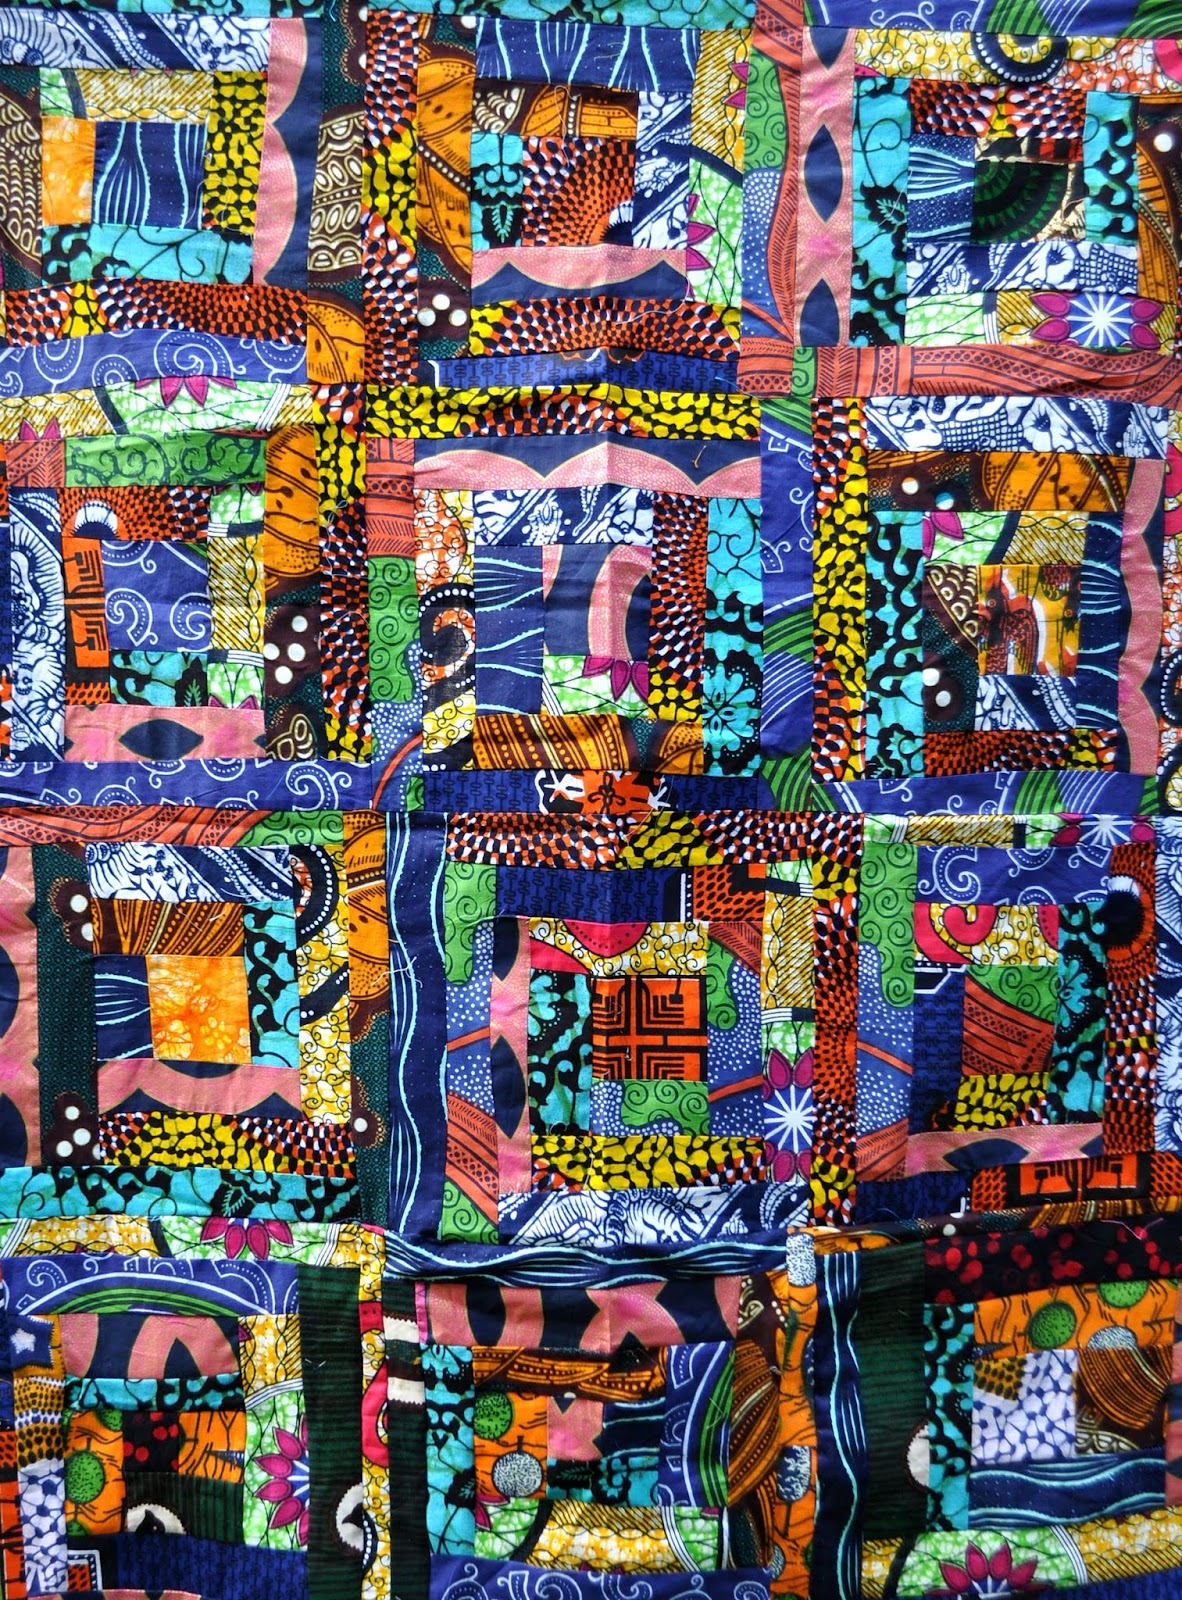 In Watermelon Sugar Quilts With African Fabric